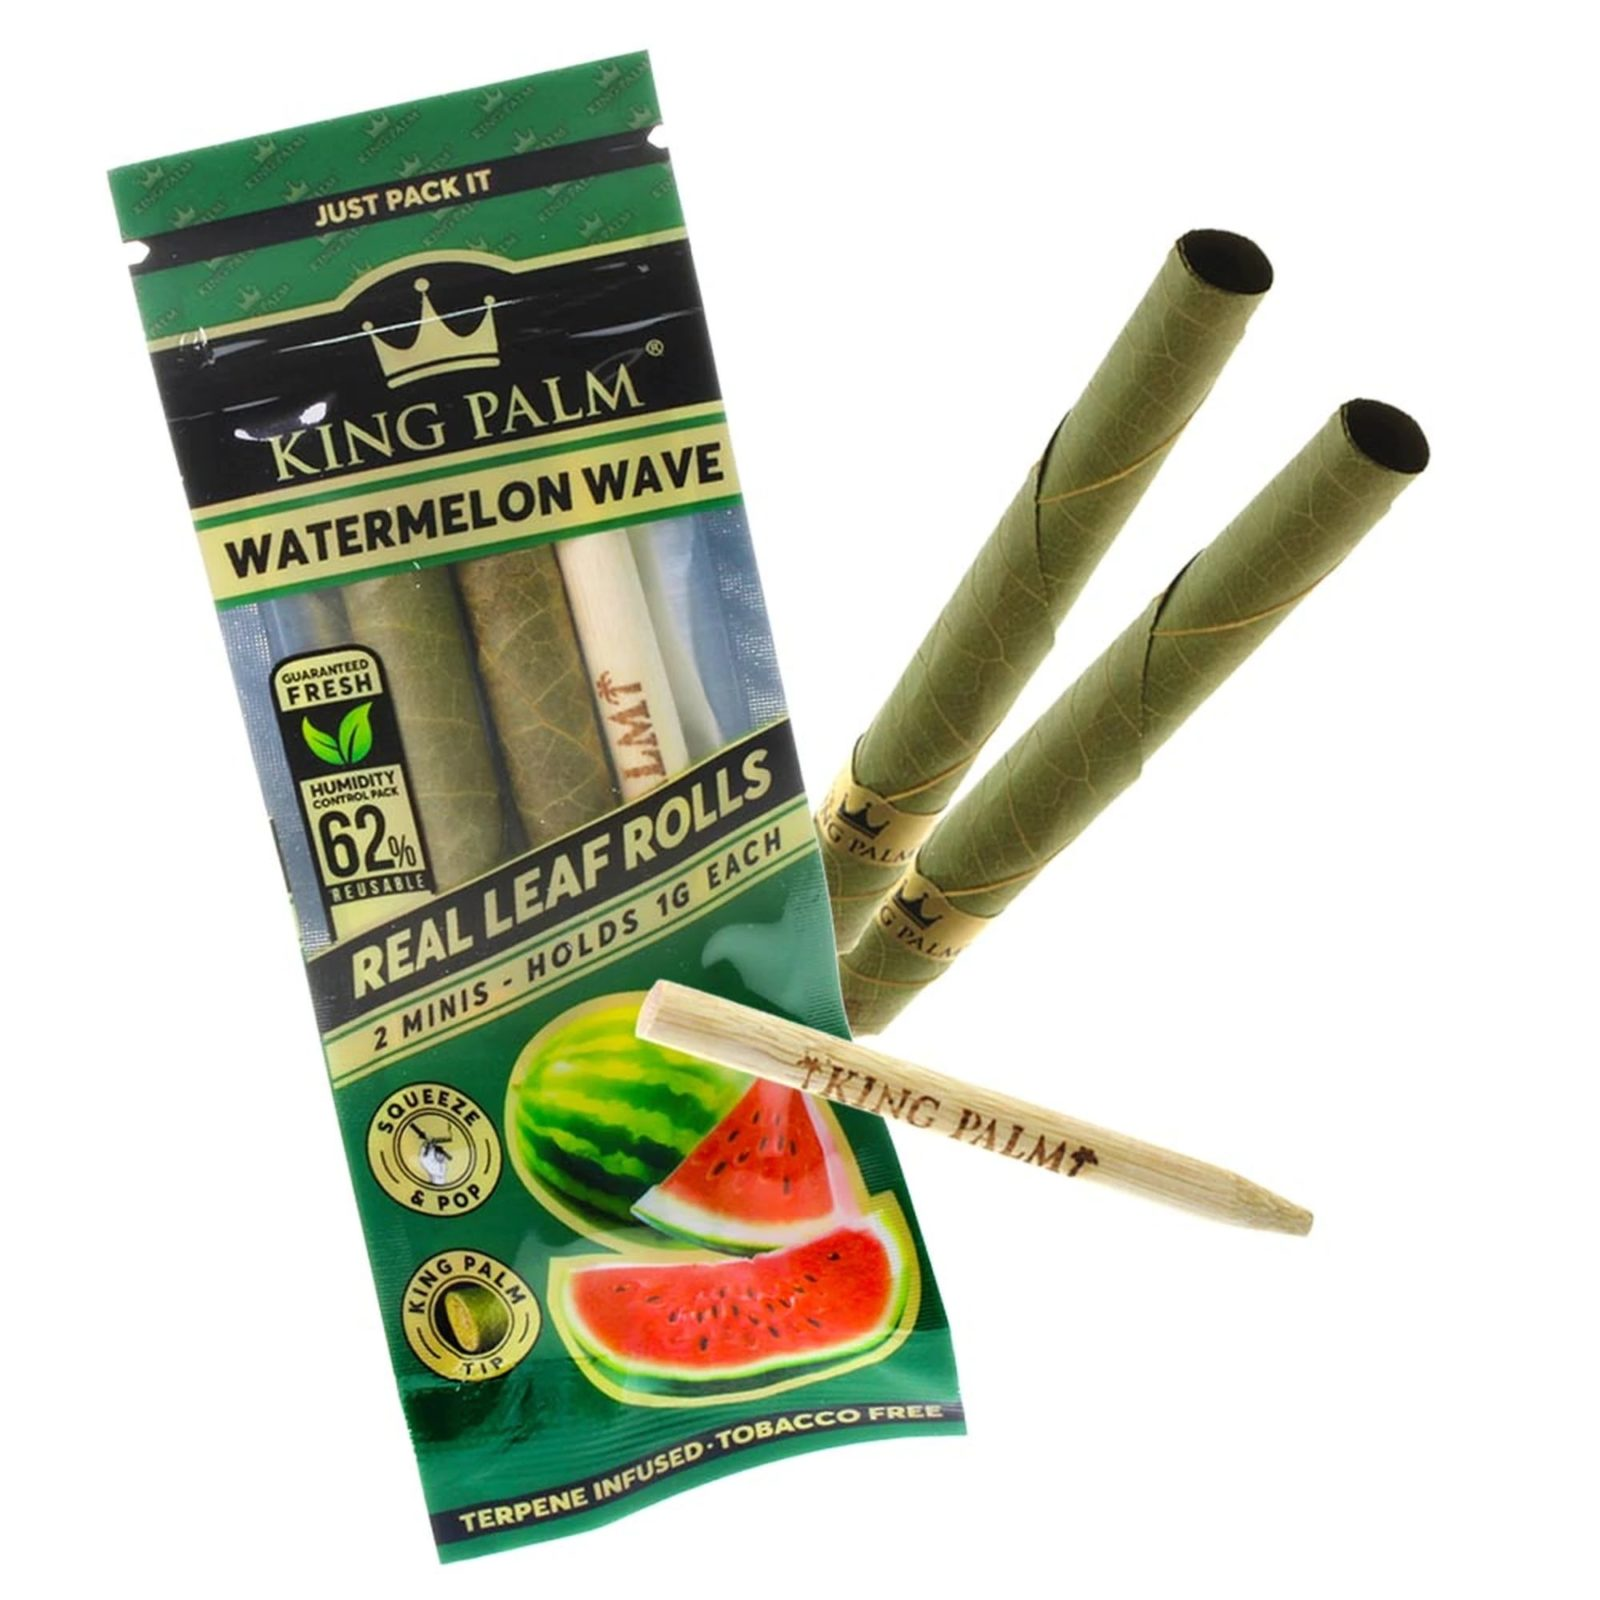 King Palm Watermelon Wave Terpene Infused Pre-Rolled Minis &Bull; 2021